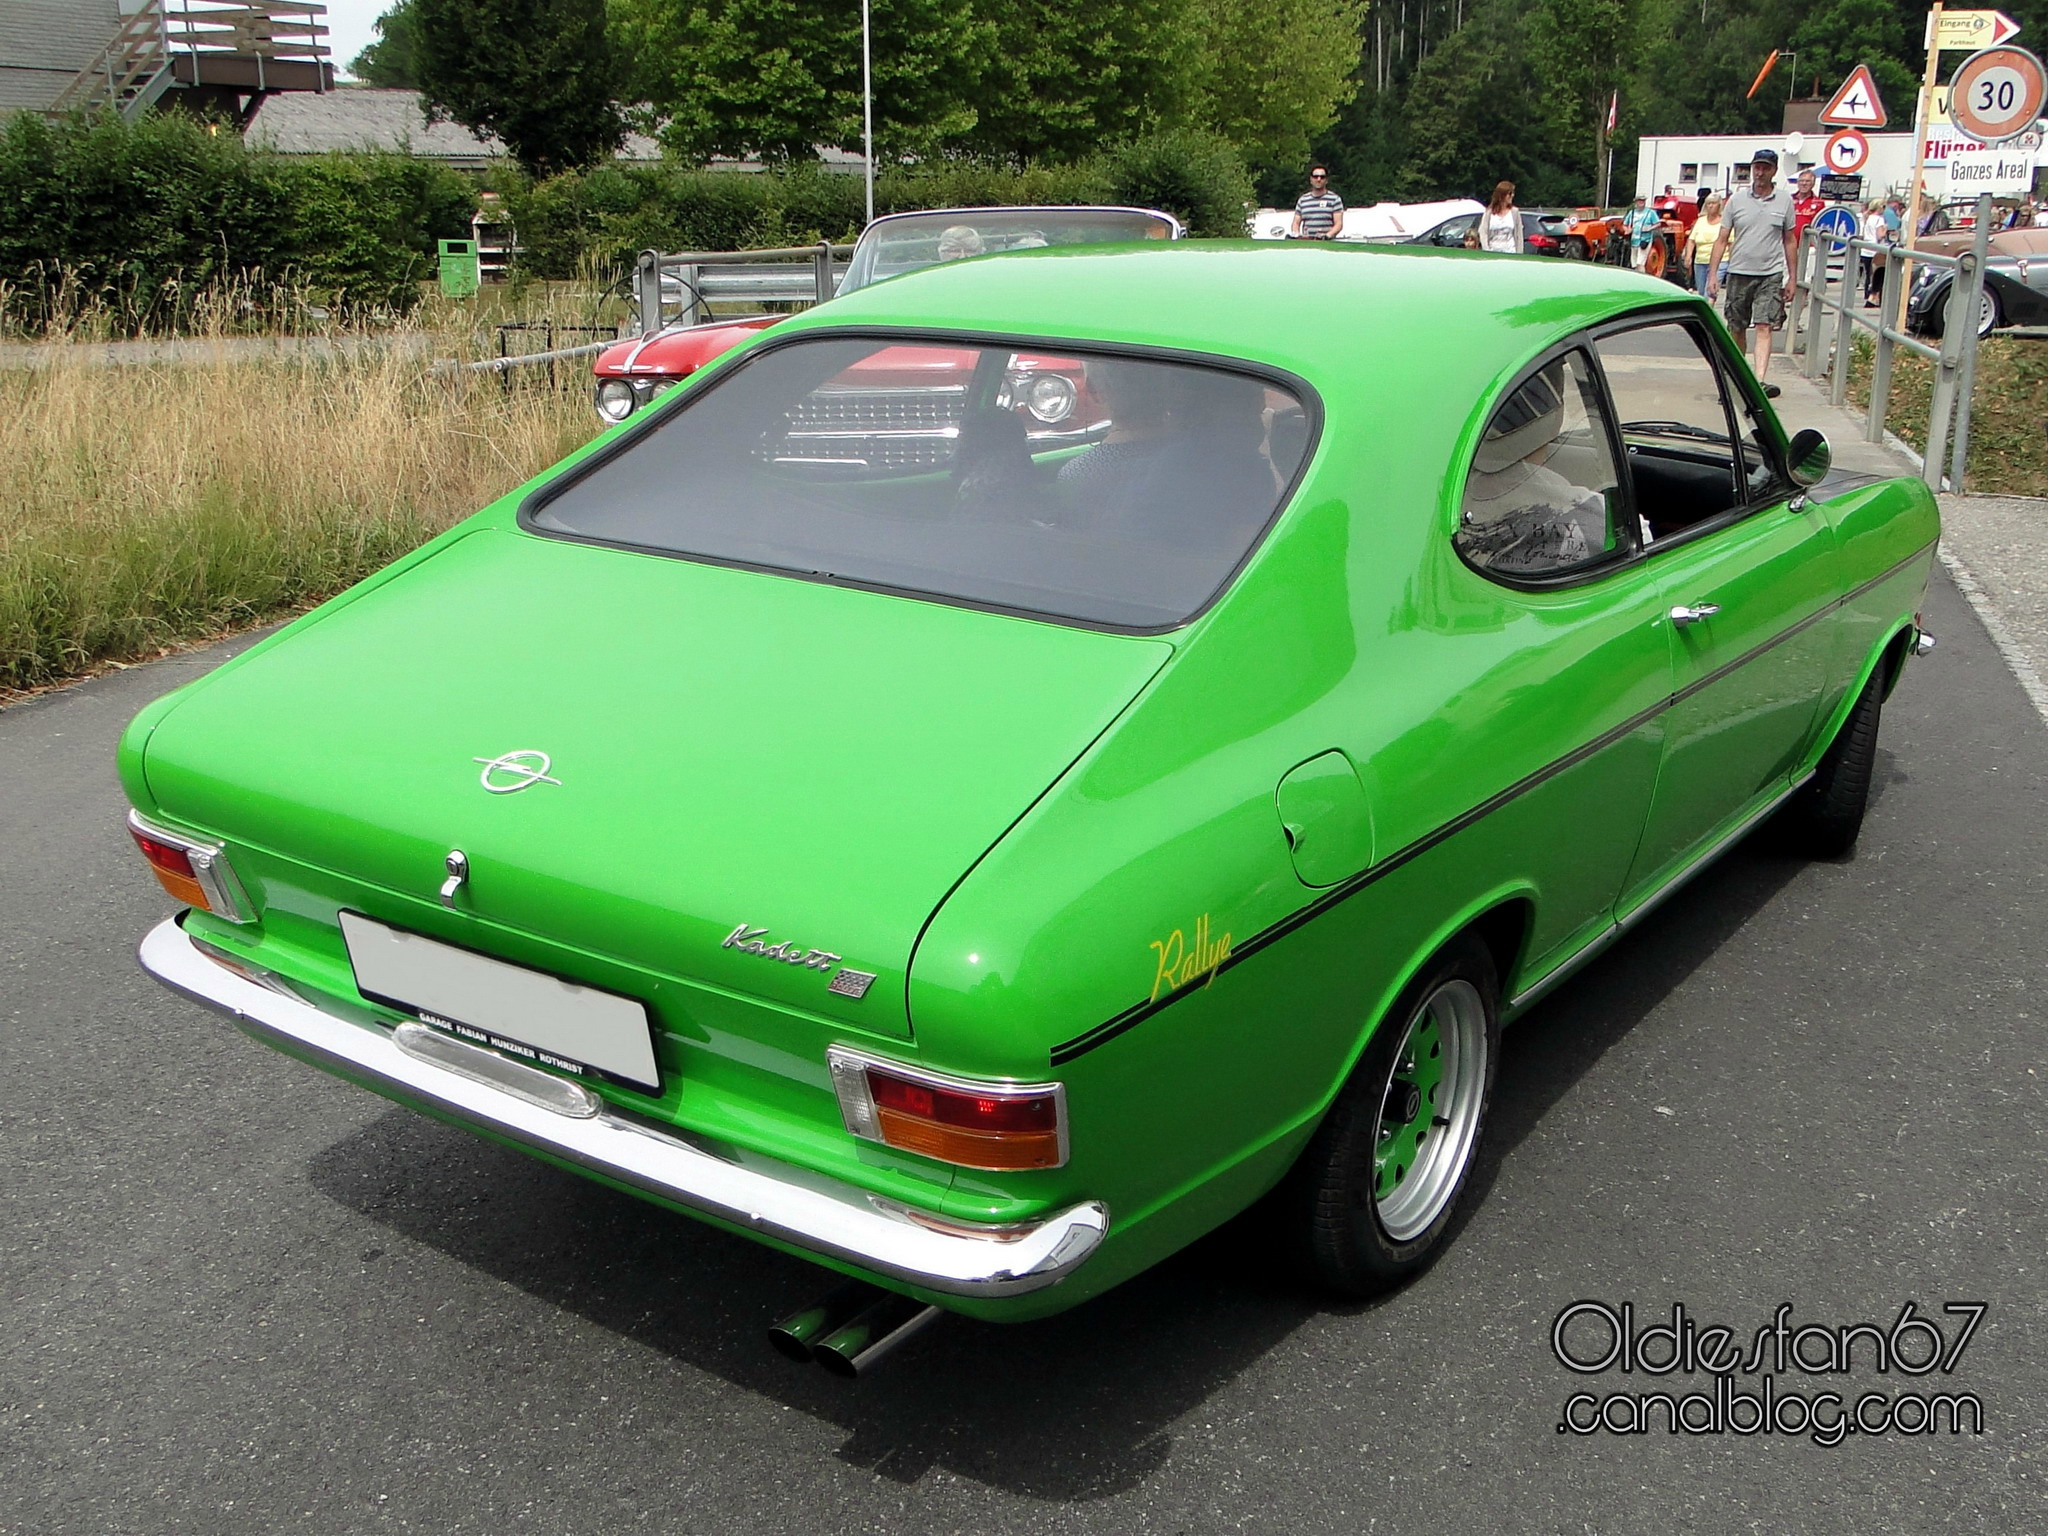 opel kadett b rallye coupe 1965 1973 oldiesfan67 mon blog auto. Black Bedroom Furniture Sets. Home Design Ideas